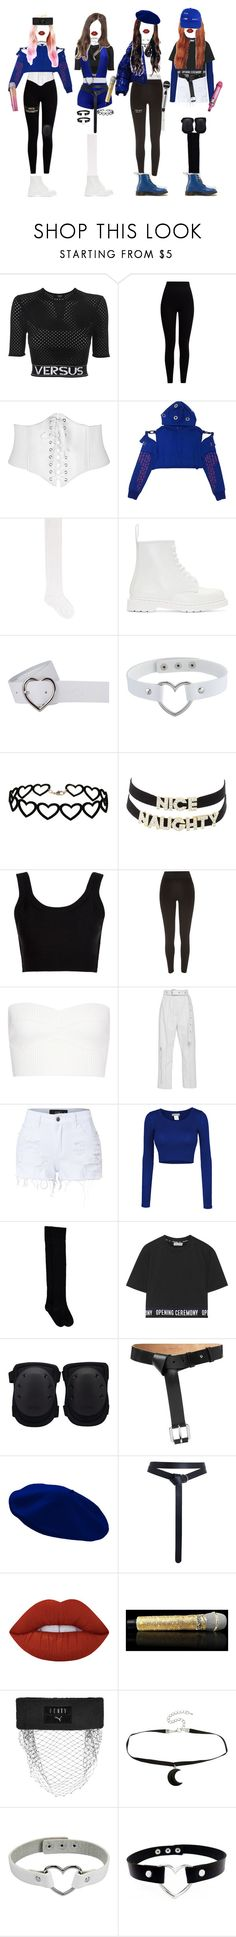 """""""[ live ] G-3 _ MY LOVE"""" by xxeucliffexx ❤ liked on Polyvore featuring Versus, Pepper & Mayne, Alessandra Rich, Dr. Martens, Miss Selfridge, Charlotte Russe, Calvin Klein Collection, River Island, Victoria Beckham and LE3NO"""